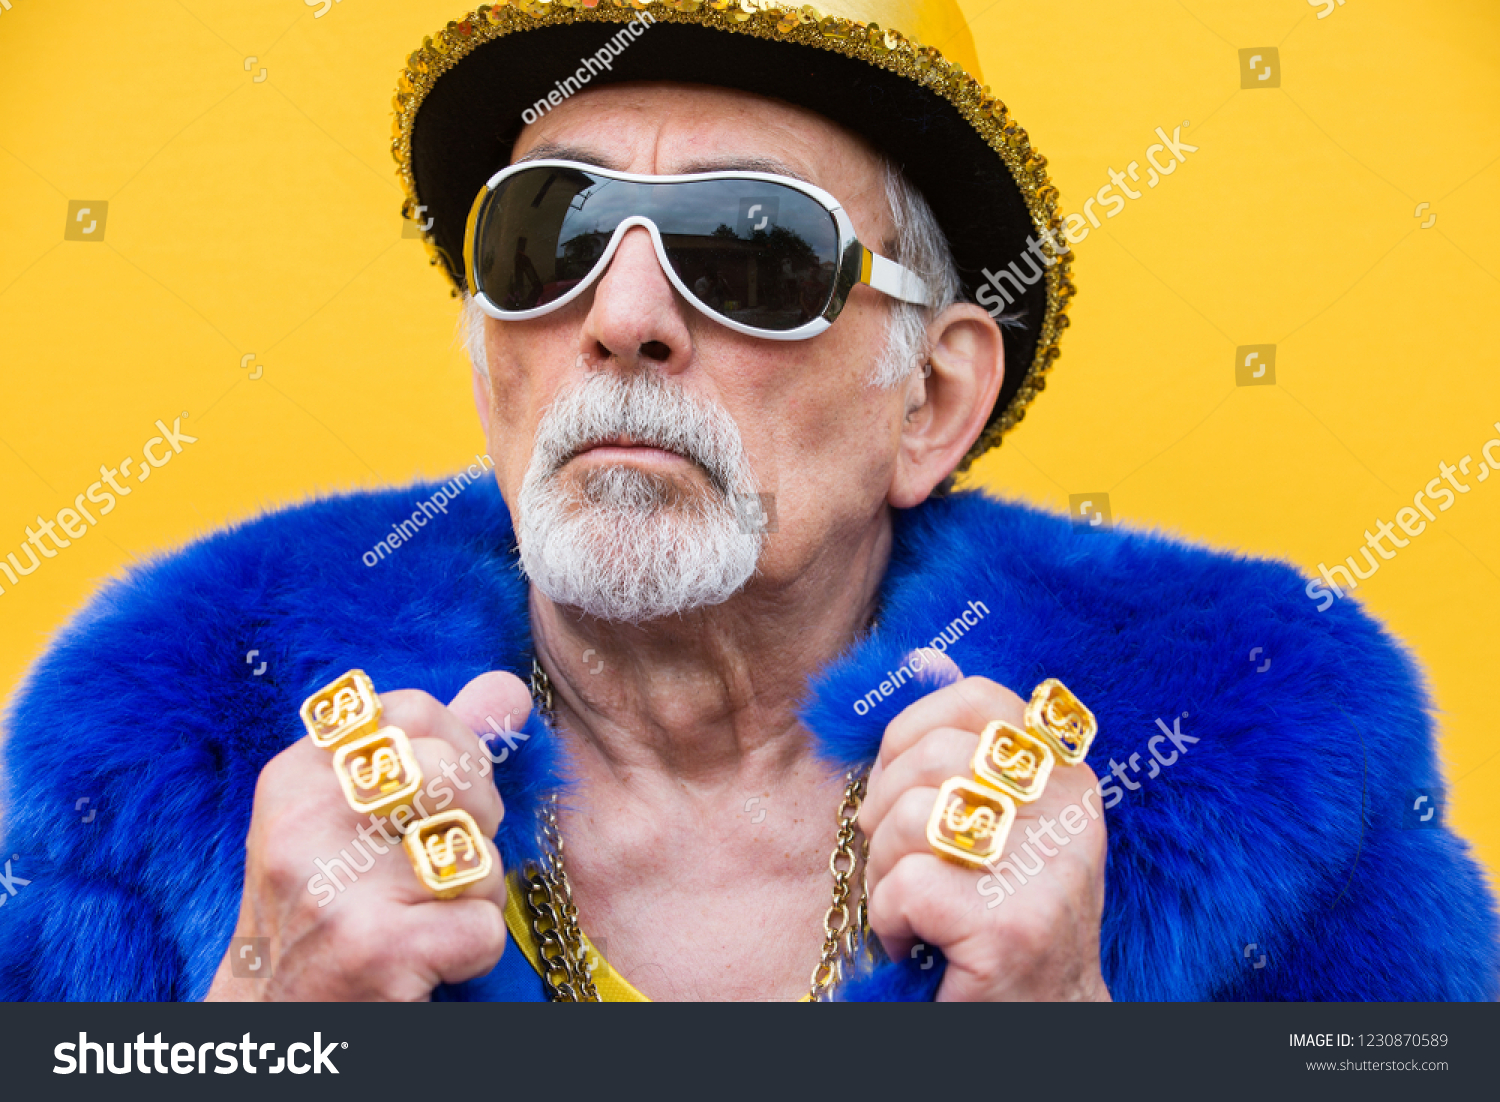 Funny and extravagant senior man posing on colored background - Youthful old man in the sixties having fun and partying #1230870589